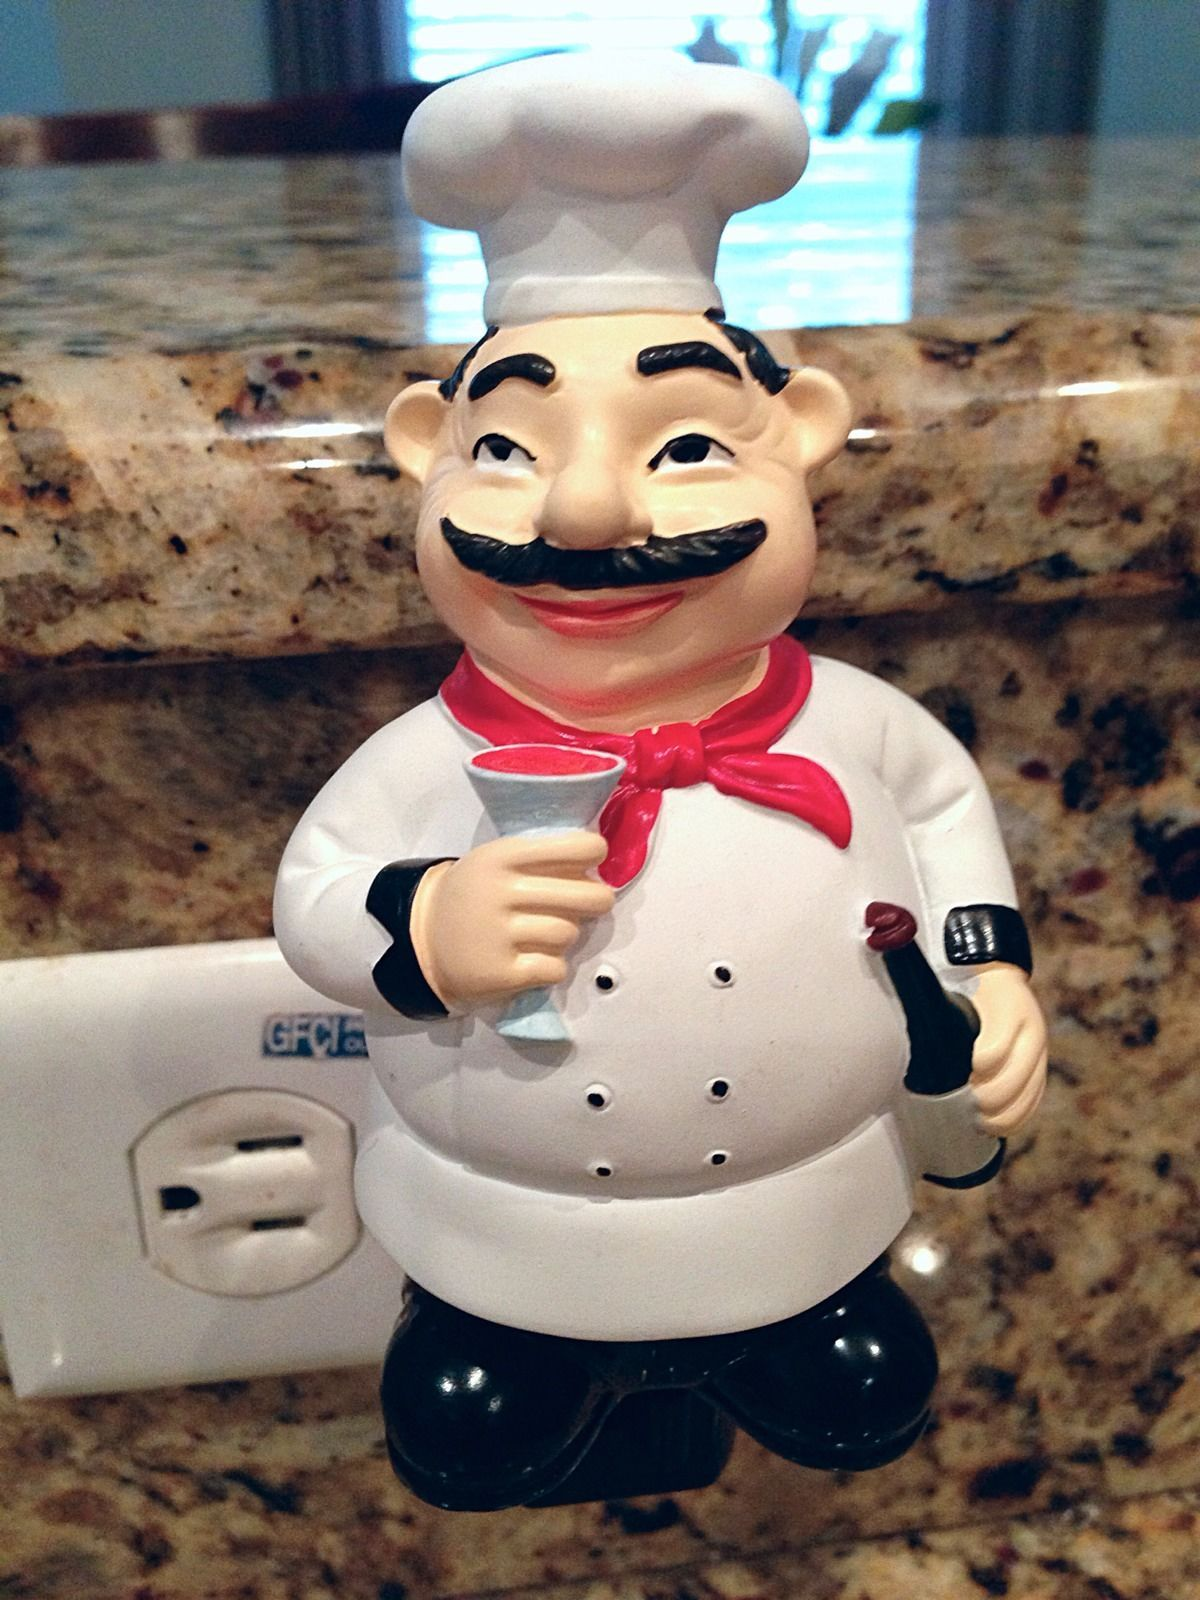 French Bistro Kitchen Decor Voom Eyes Fat Chef Wine Night Light Home